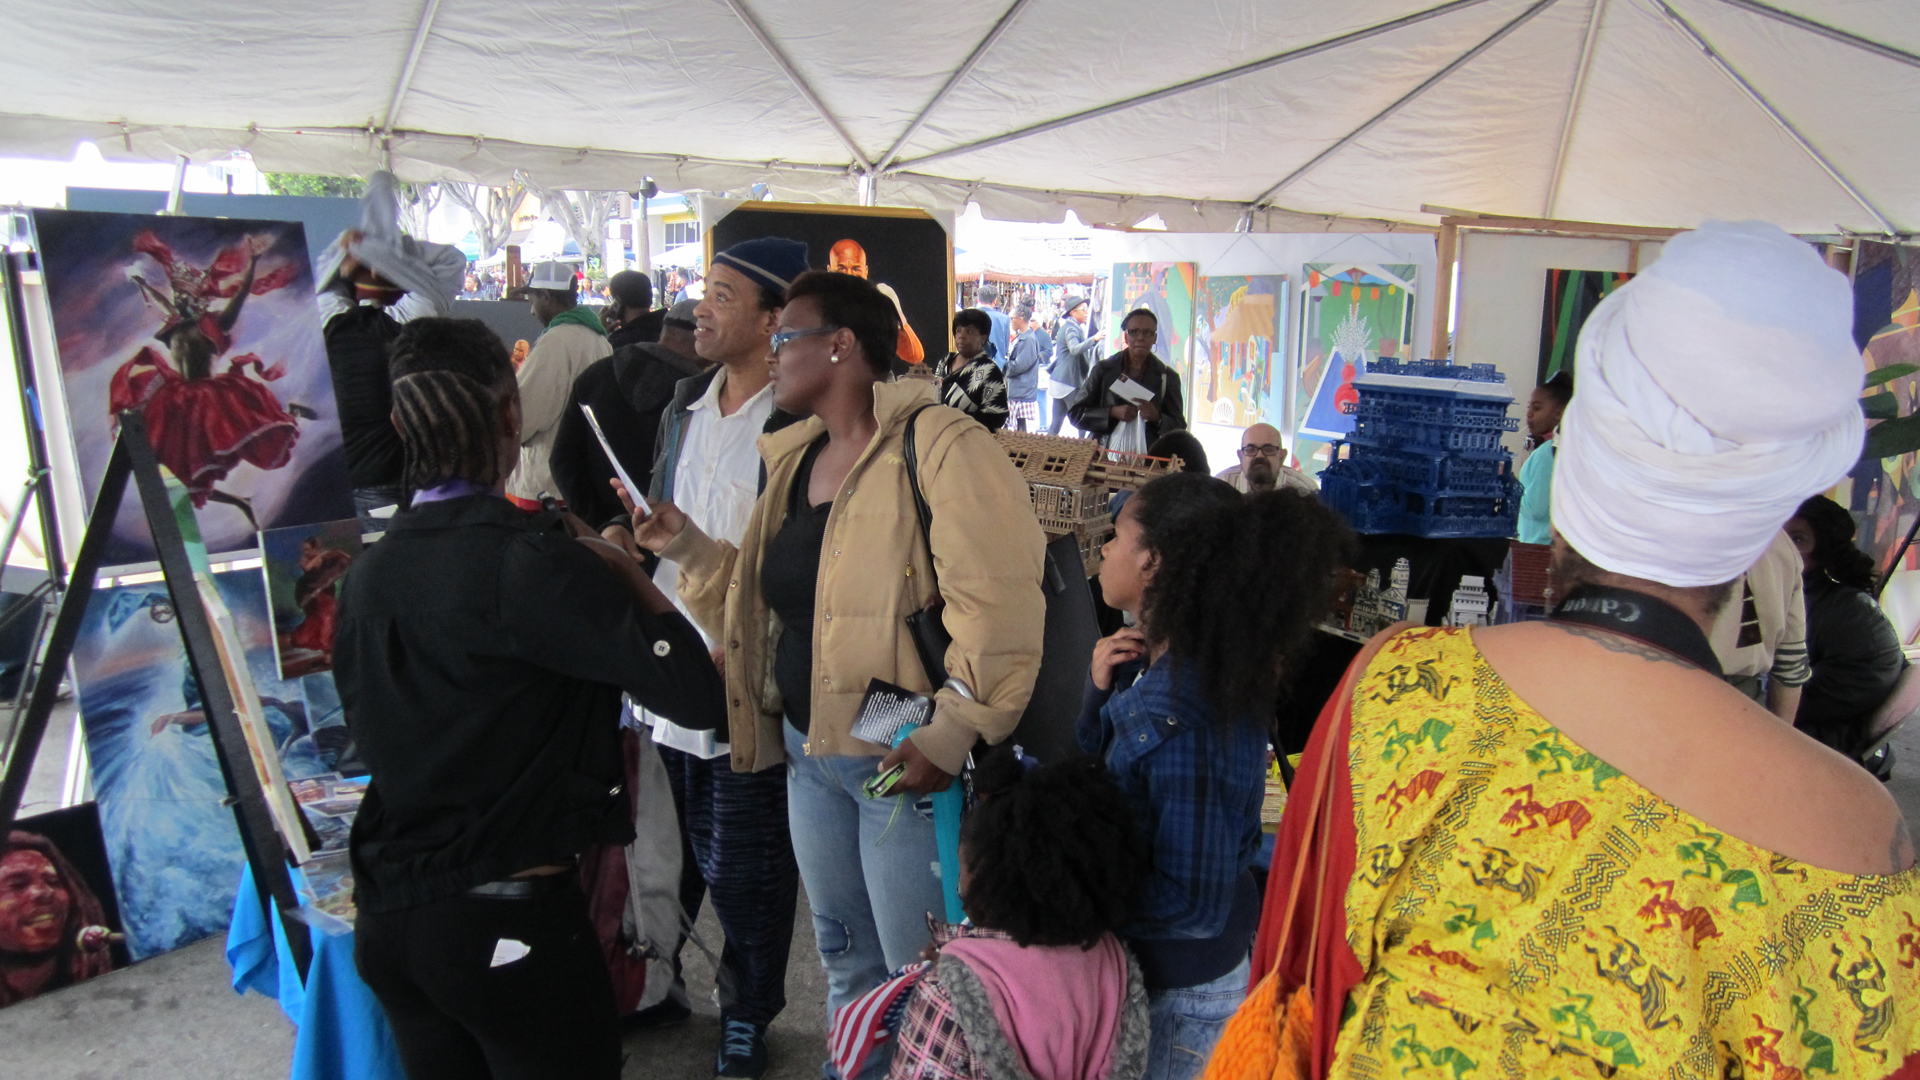 Martin Luther King Parade Art Exhibit at Leimert Park